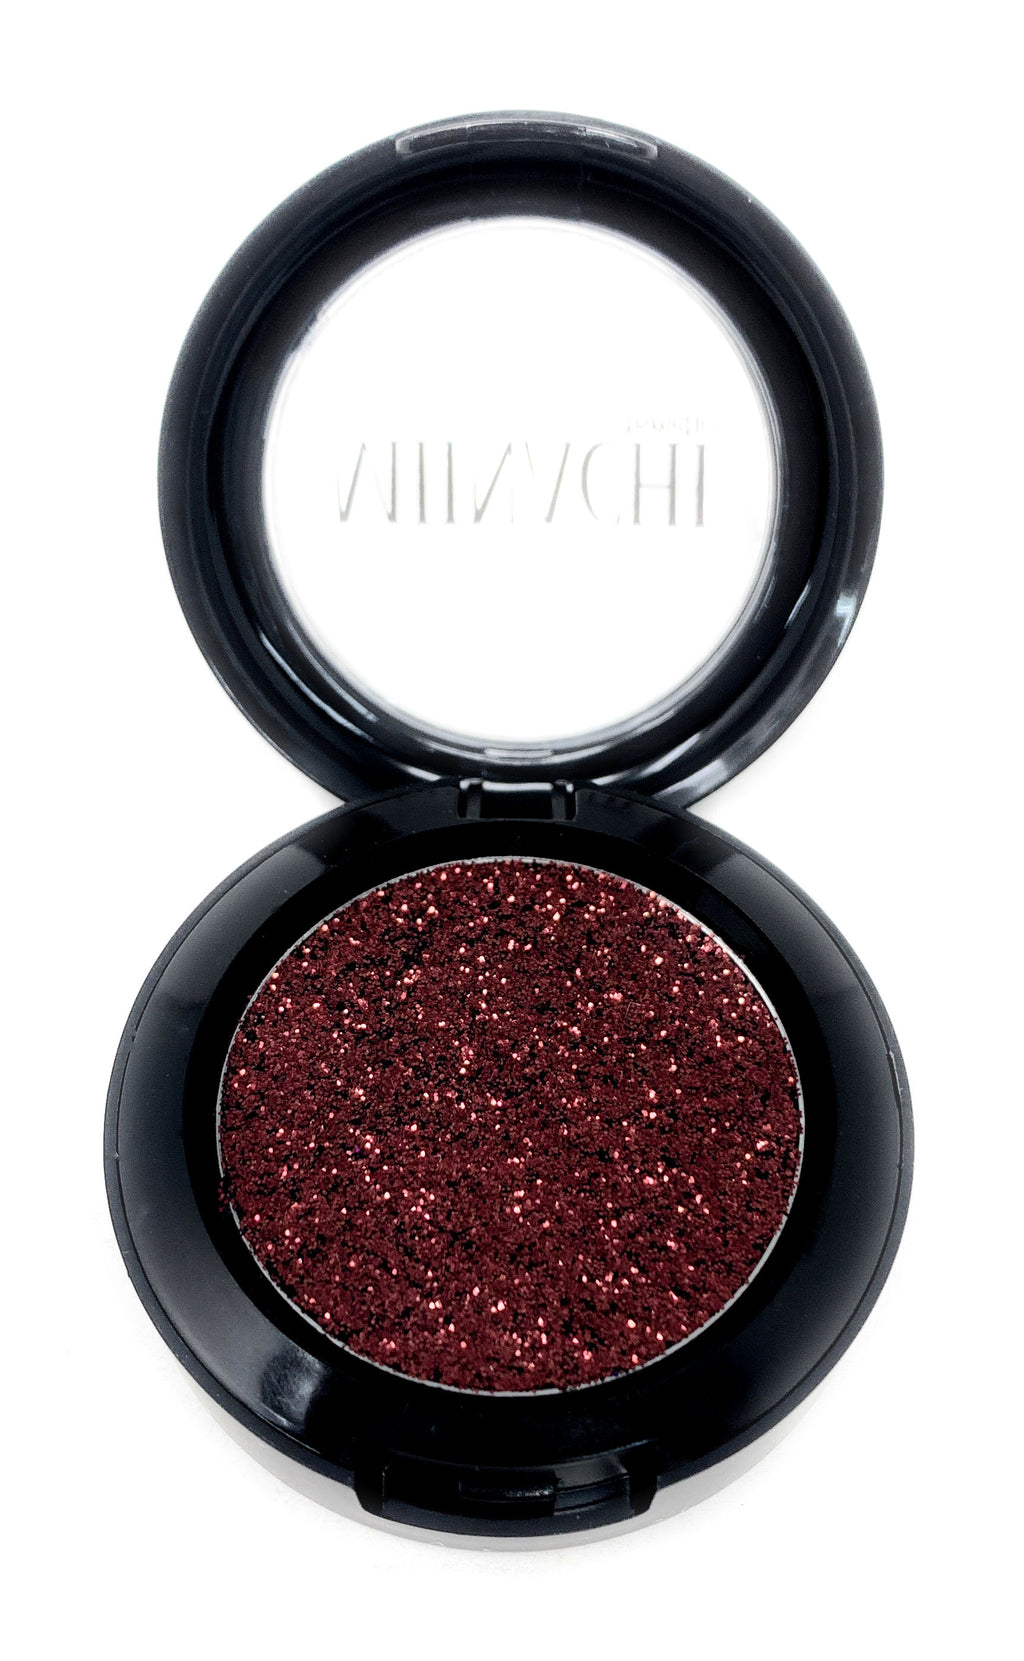 Single Pressed Glitter in the shade Bronze JUMBO Size, No Glue Needed, In Compact, Pigmented, No Fall Out, Glitter, Cosmetic Grade Glitter